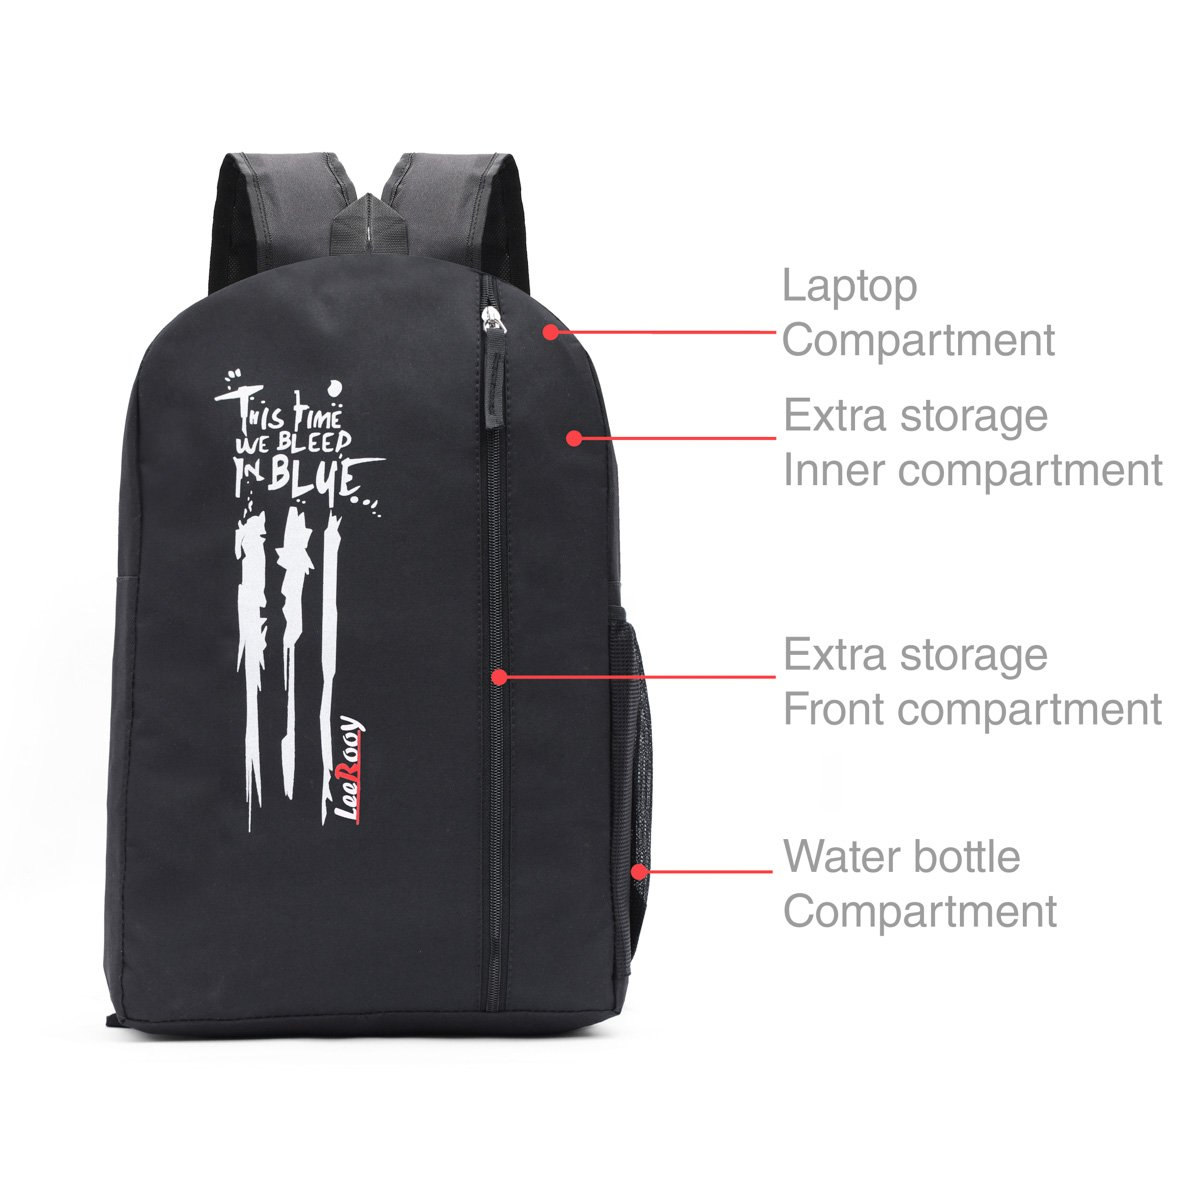 940bafd719 LeeRooy Classic Nylon 20 L Black Backpack As Laptop Bag School Bag College  Bag Messenger Bag Casual Bag for Men and Women  Amazon.in  Bags